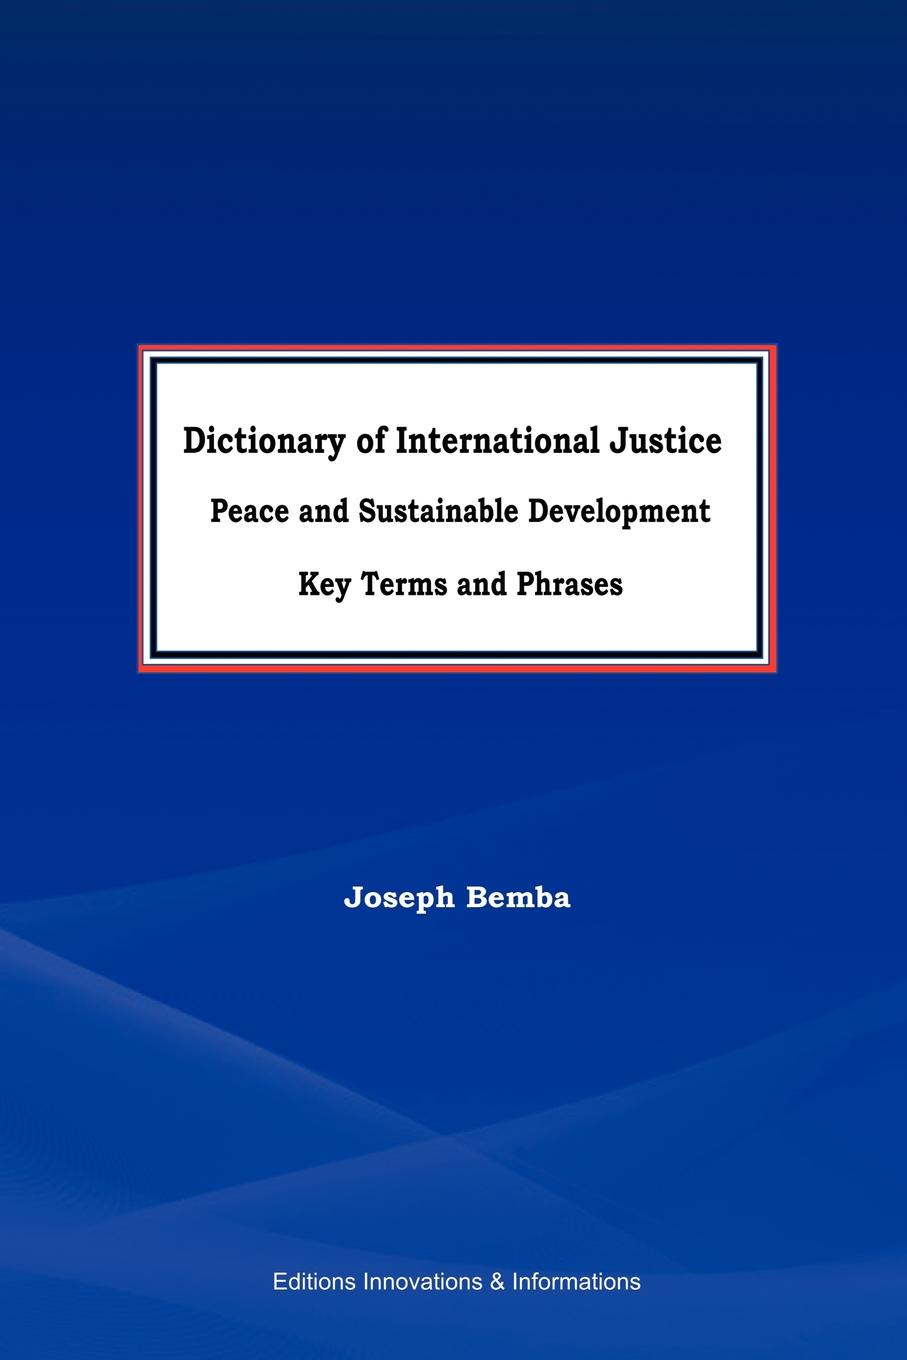 Joseph Bemba Dictionary of International Justice, Peace and sustainable development. Key terms and phrases peace and justice